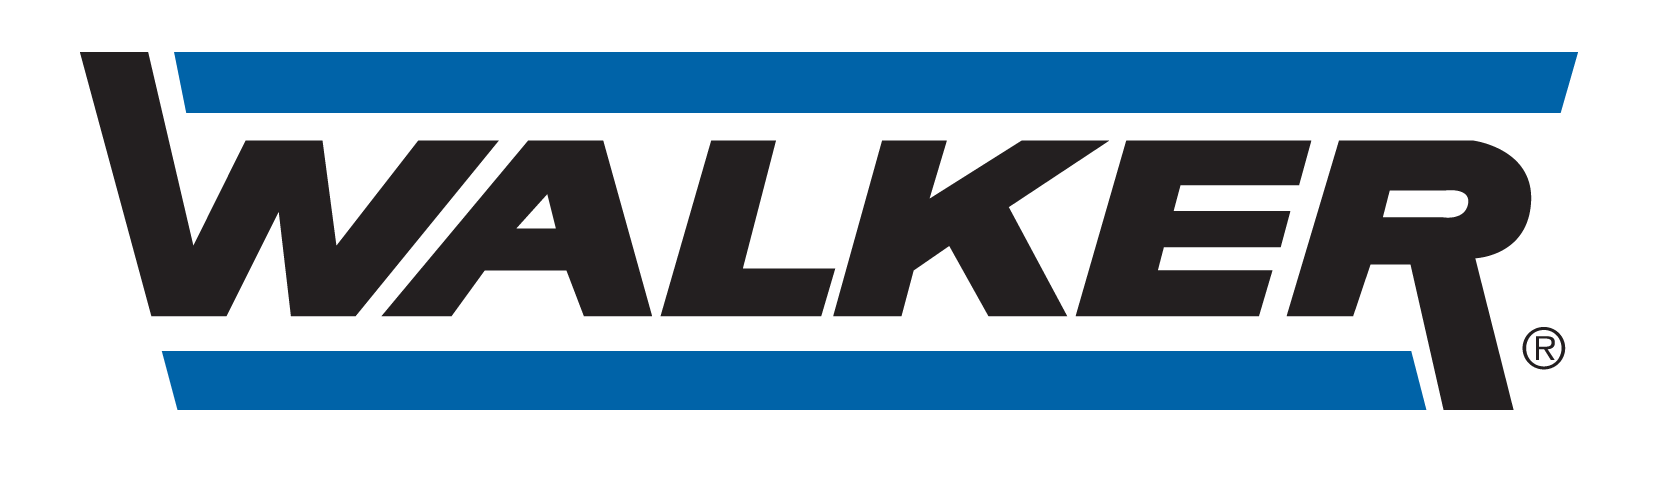 GARAGE SERVICES PLUS - logo Walker